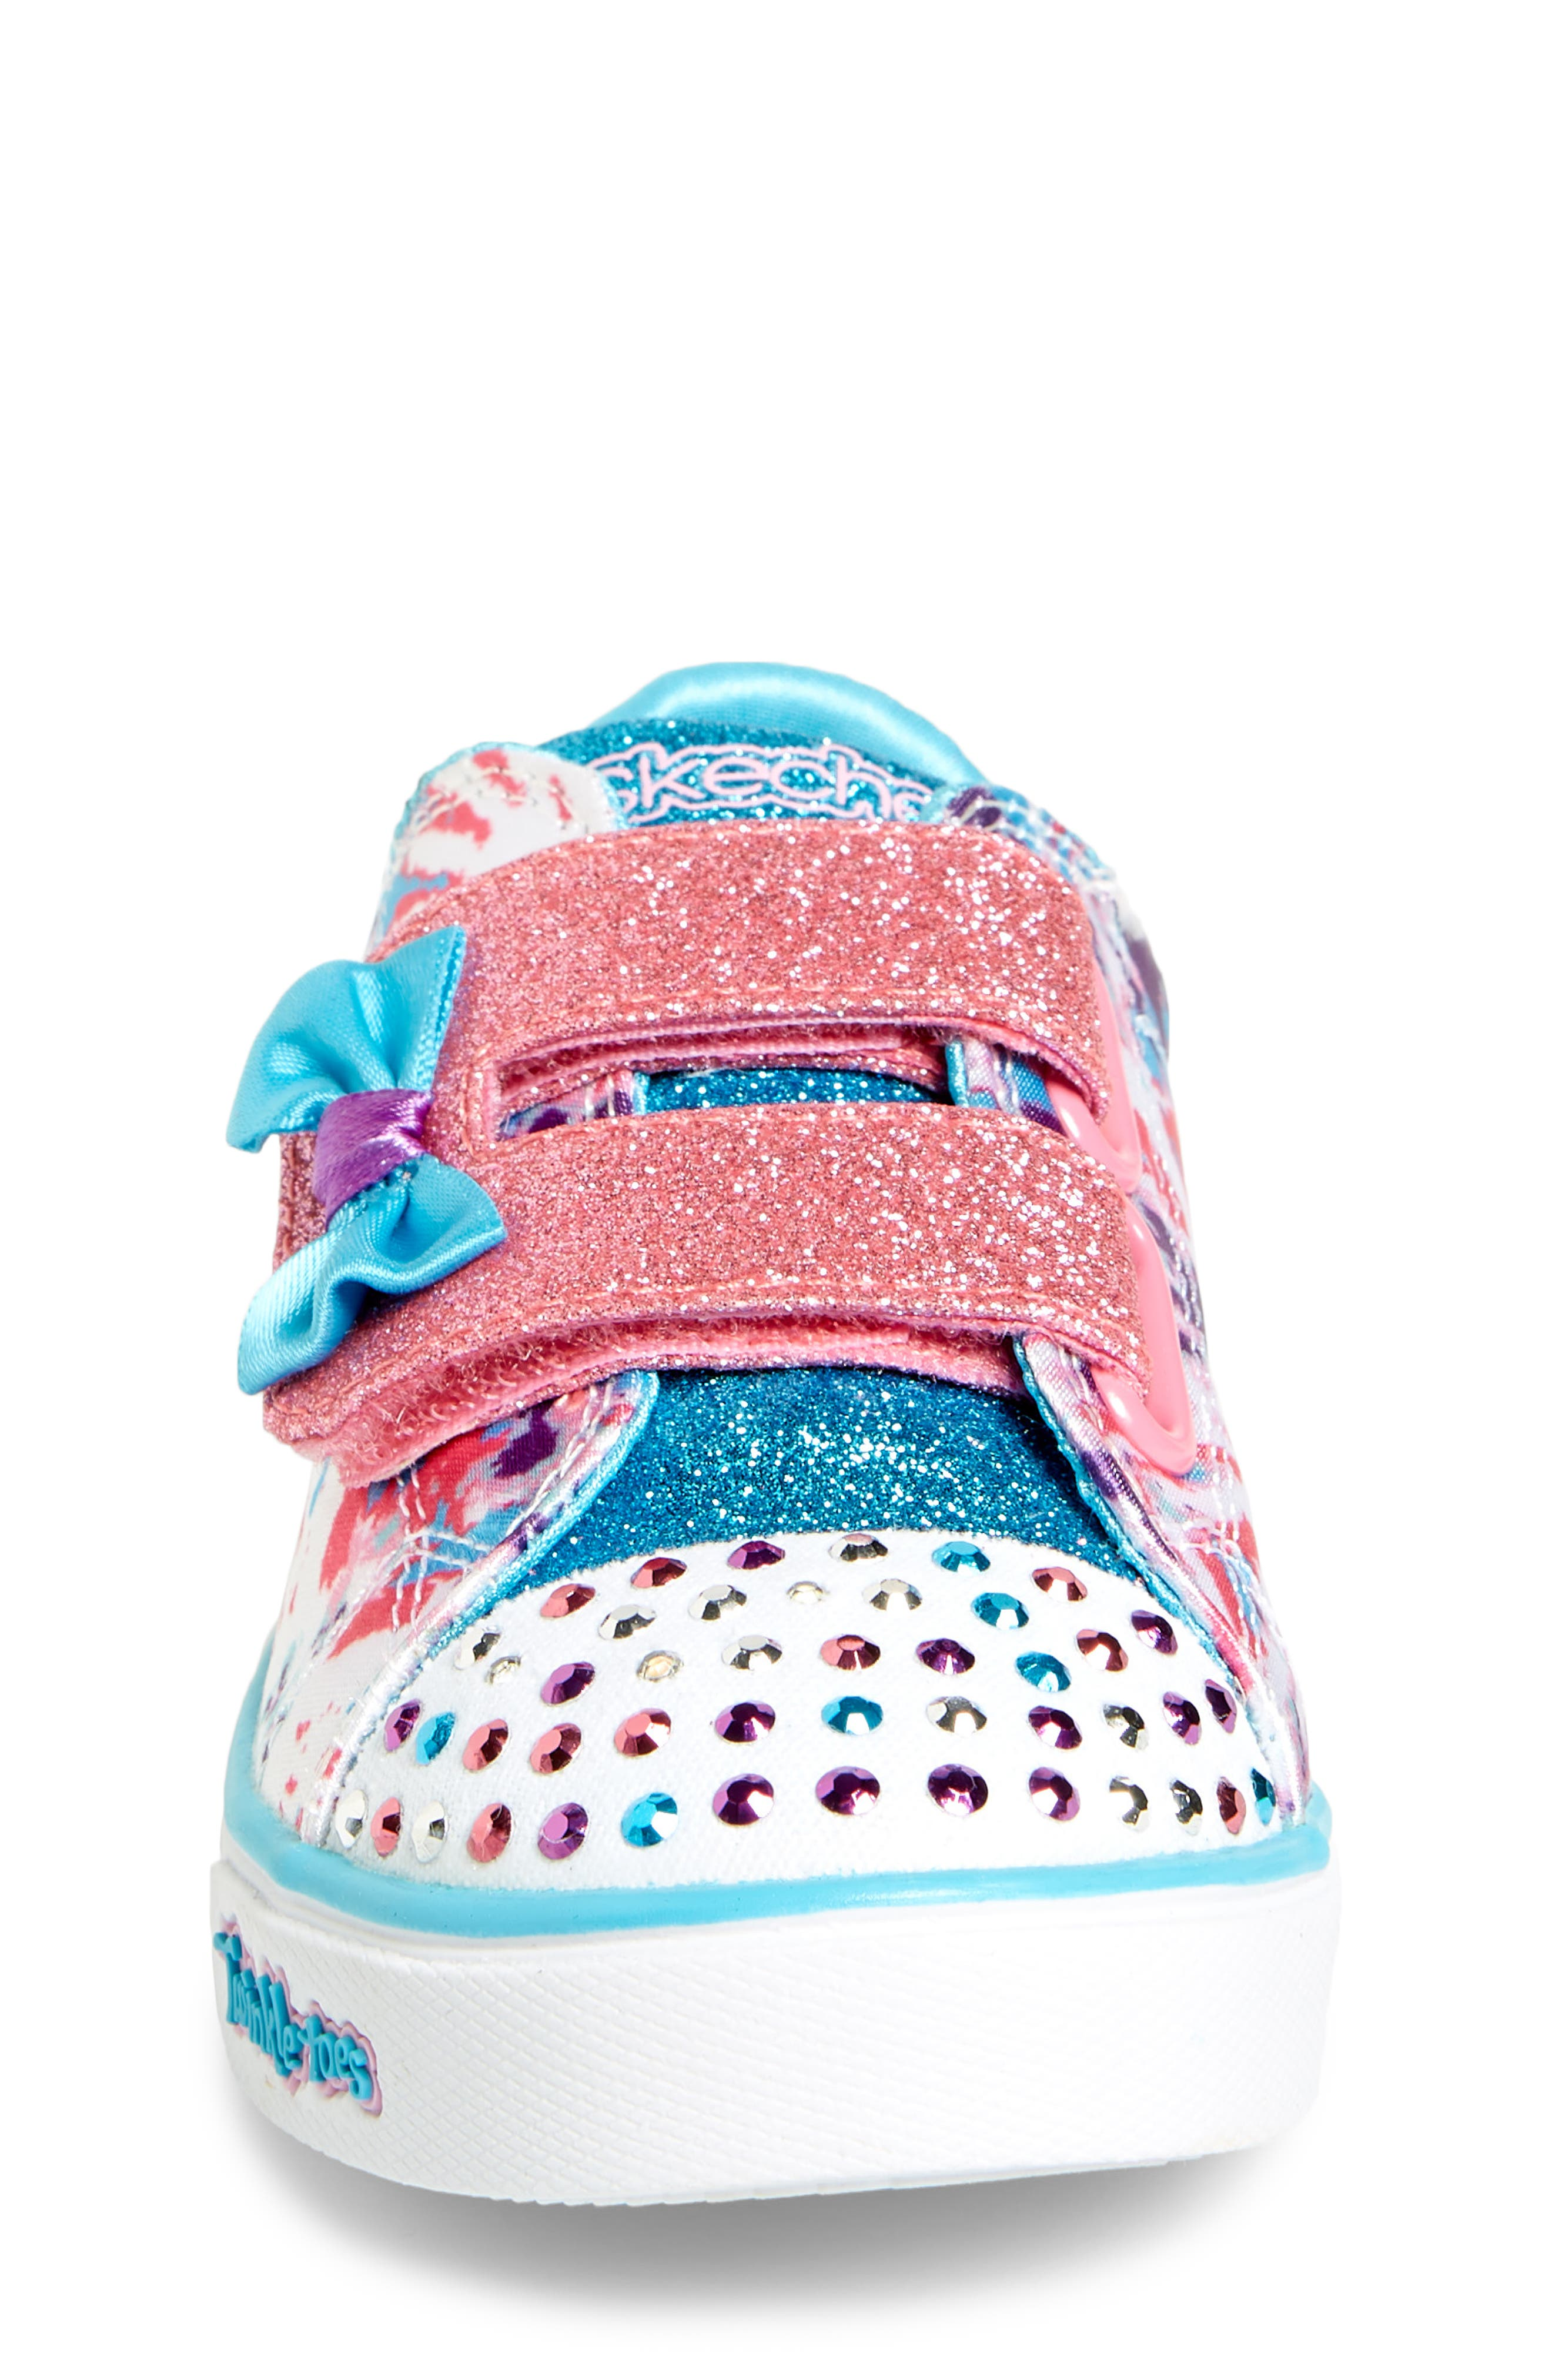 SKECHERS,                             Sparkle Glitz Lil Dazzle Sneaker,                             Alternate thumbnail 4, color,                             199